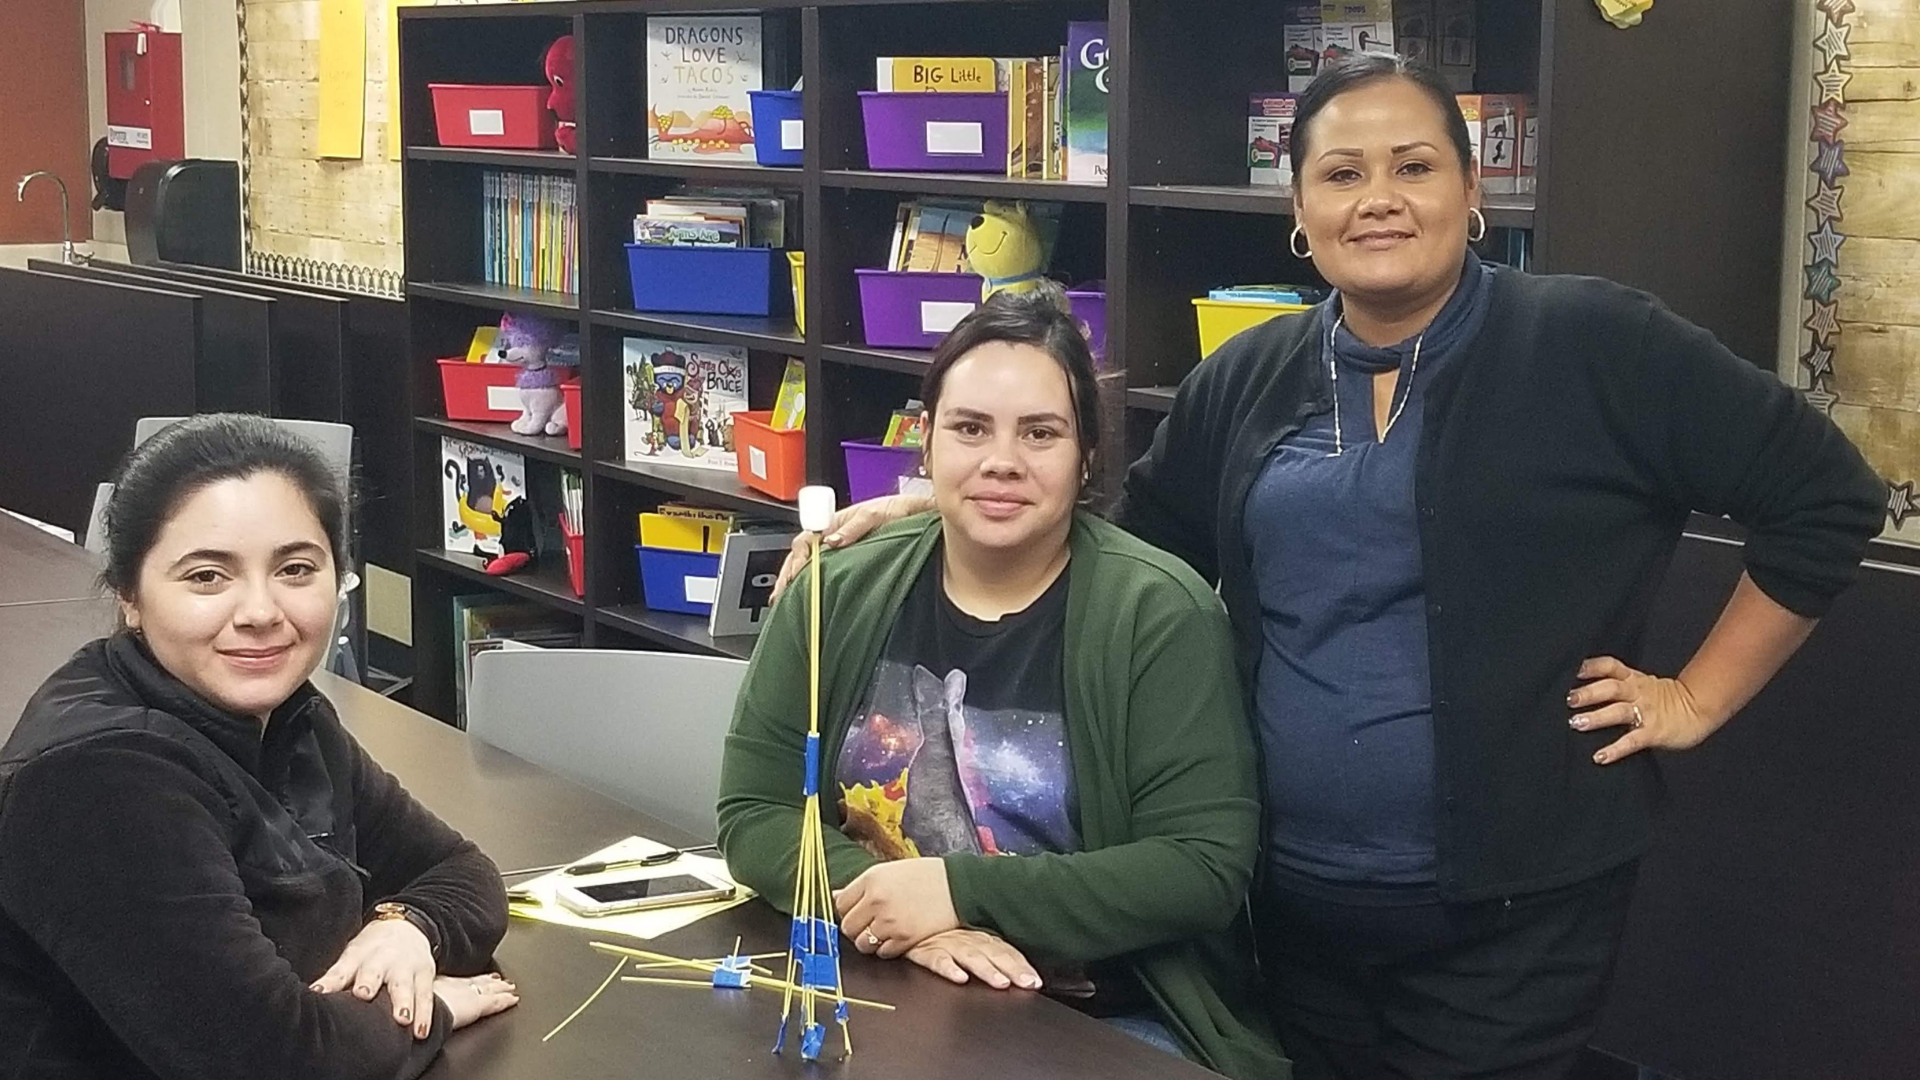 PIQE parents study such topics as creating a home environment conducive to learning; improving academic performance; students' social-emotional development; and preparing students for college, among many others.